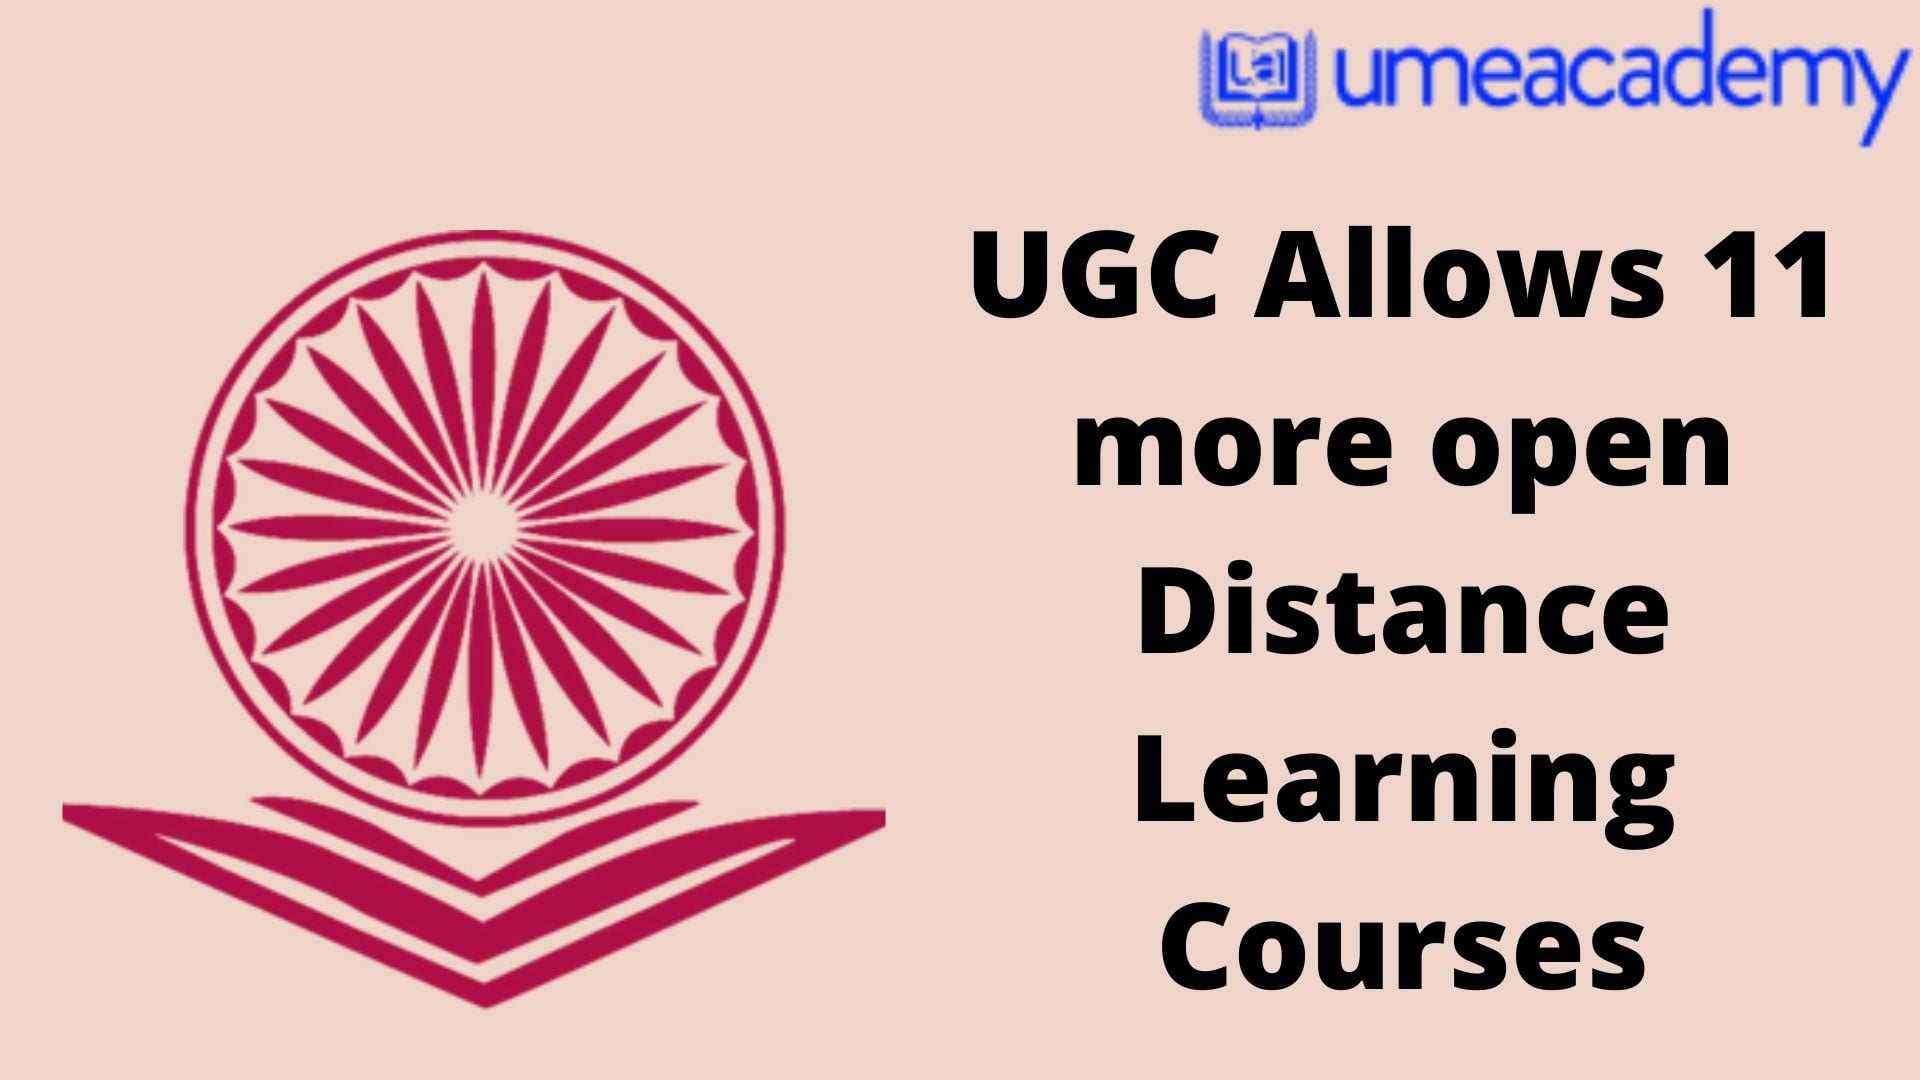 UGC Allows 11 more open Distance Learning Courses